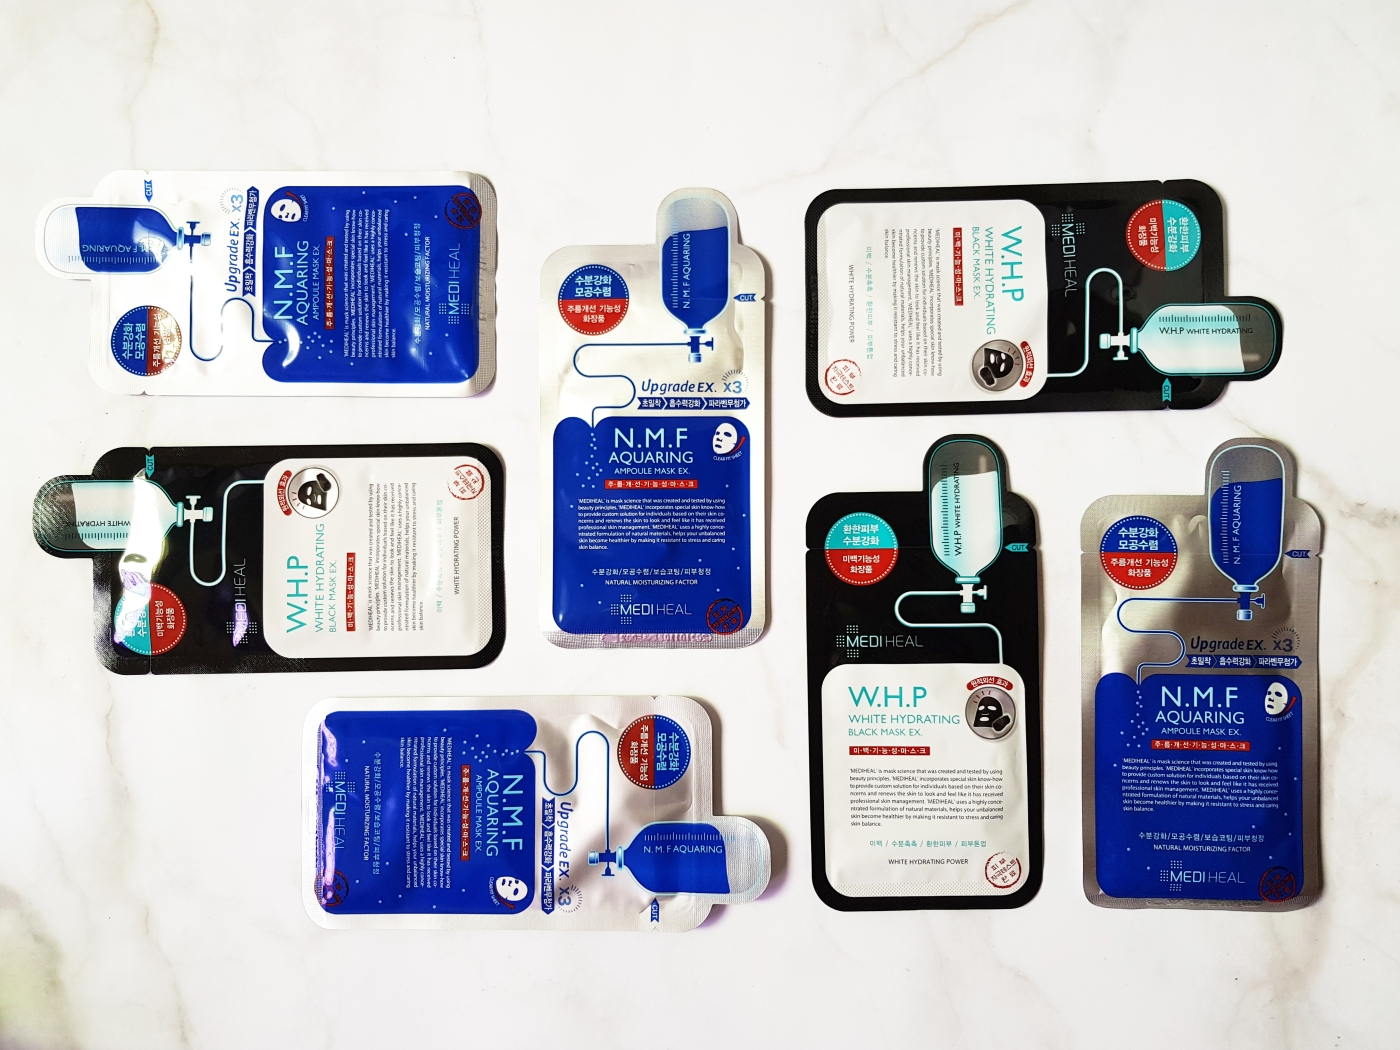 mediheal aqua ring ampoule hydrating whitening mask review